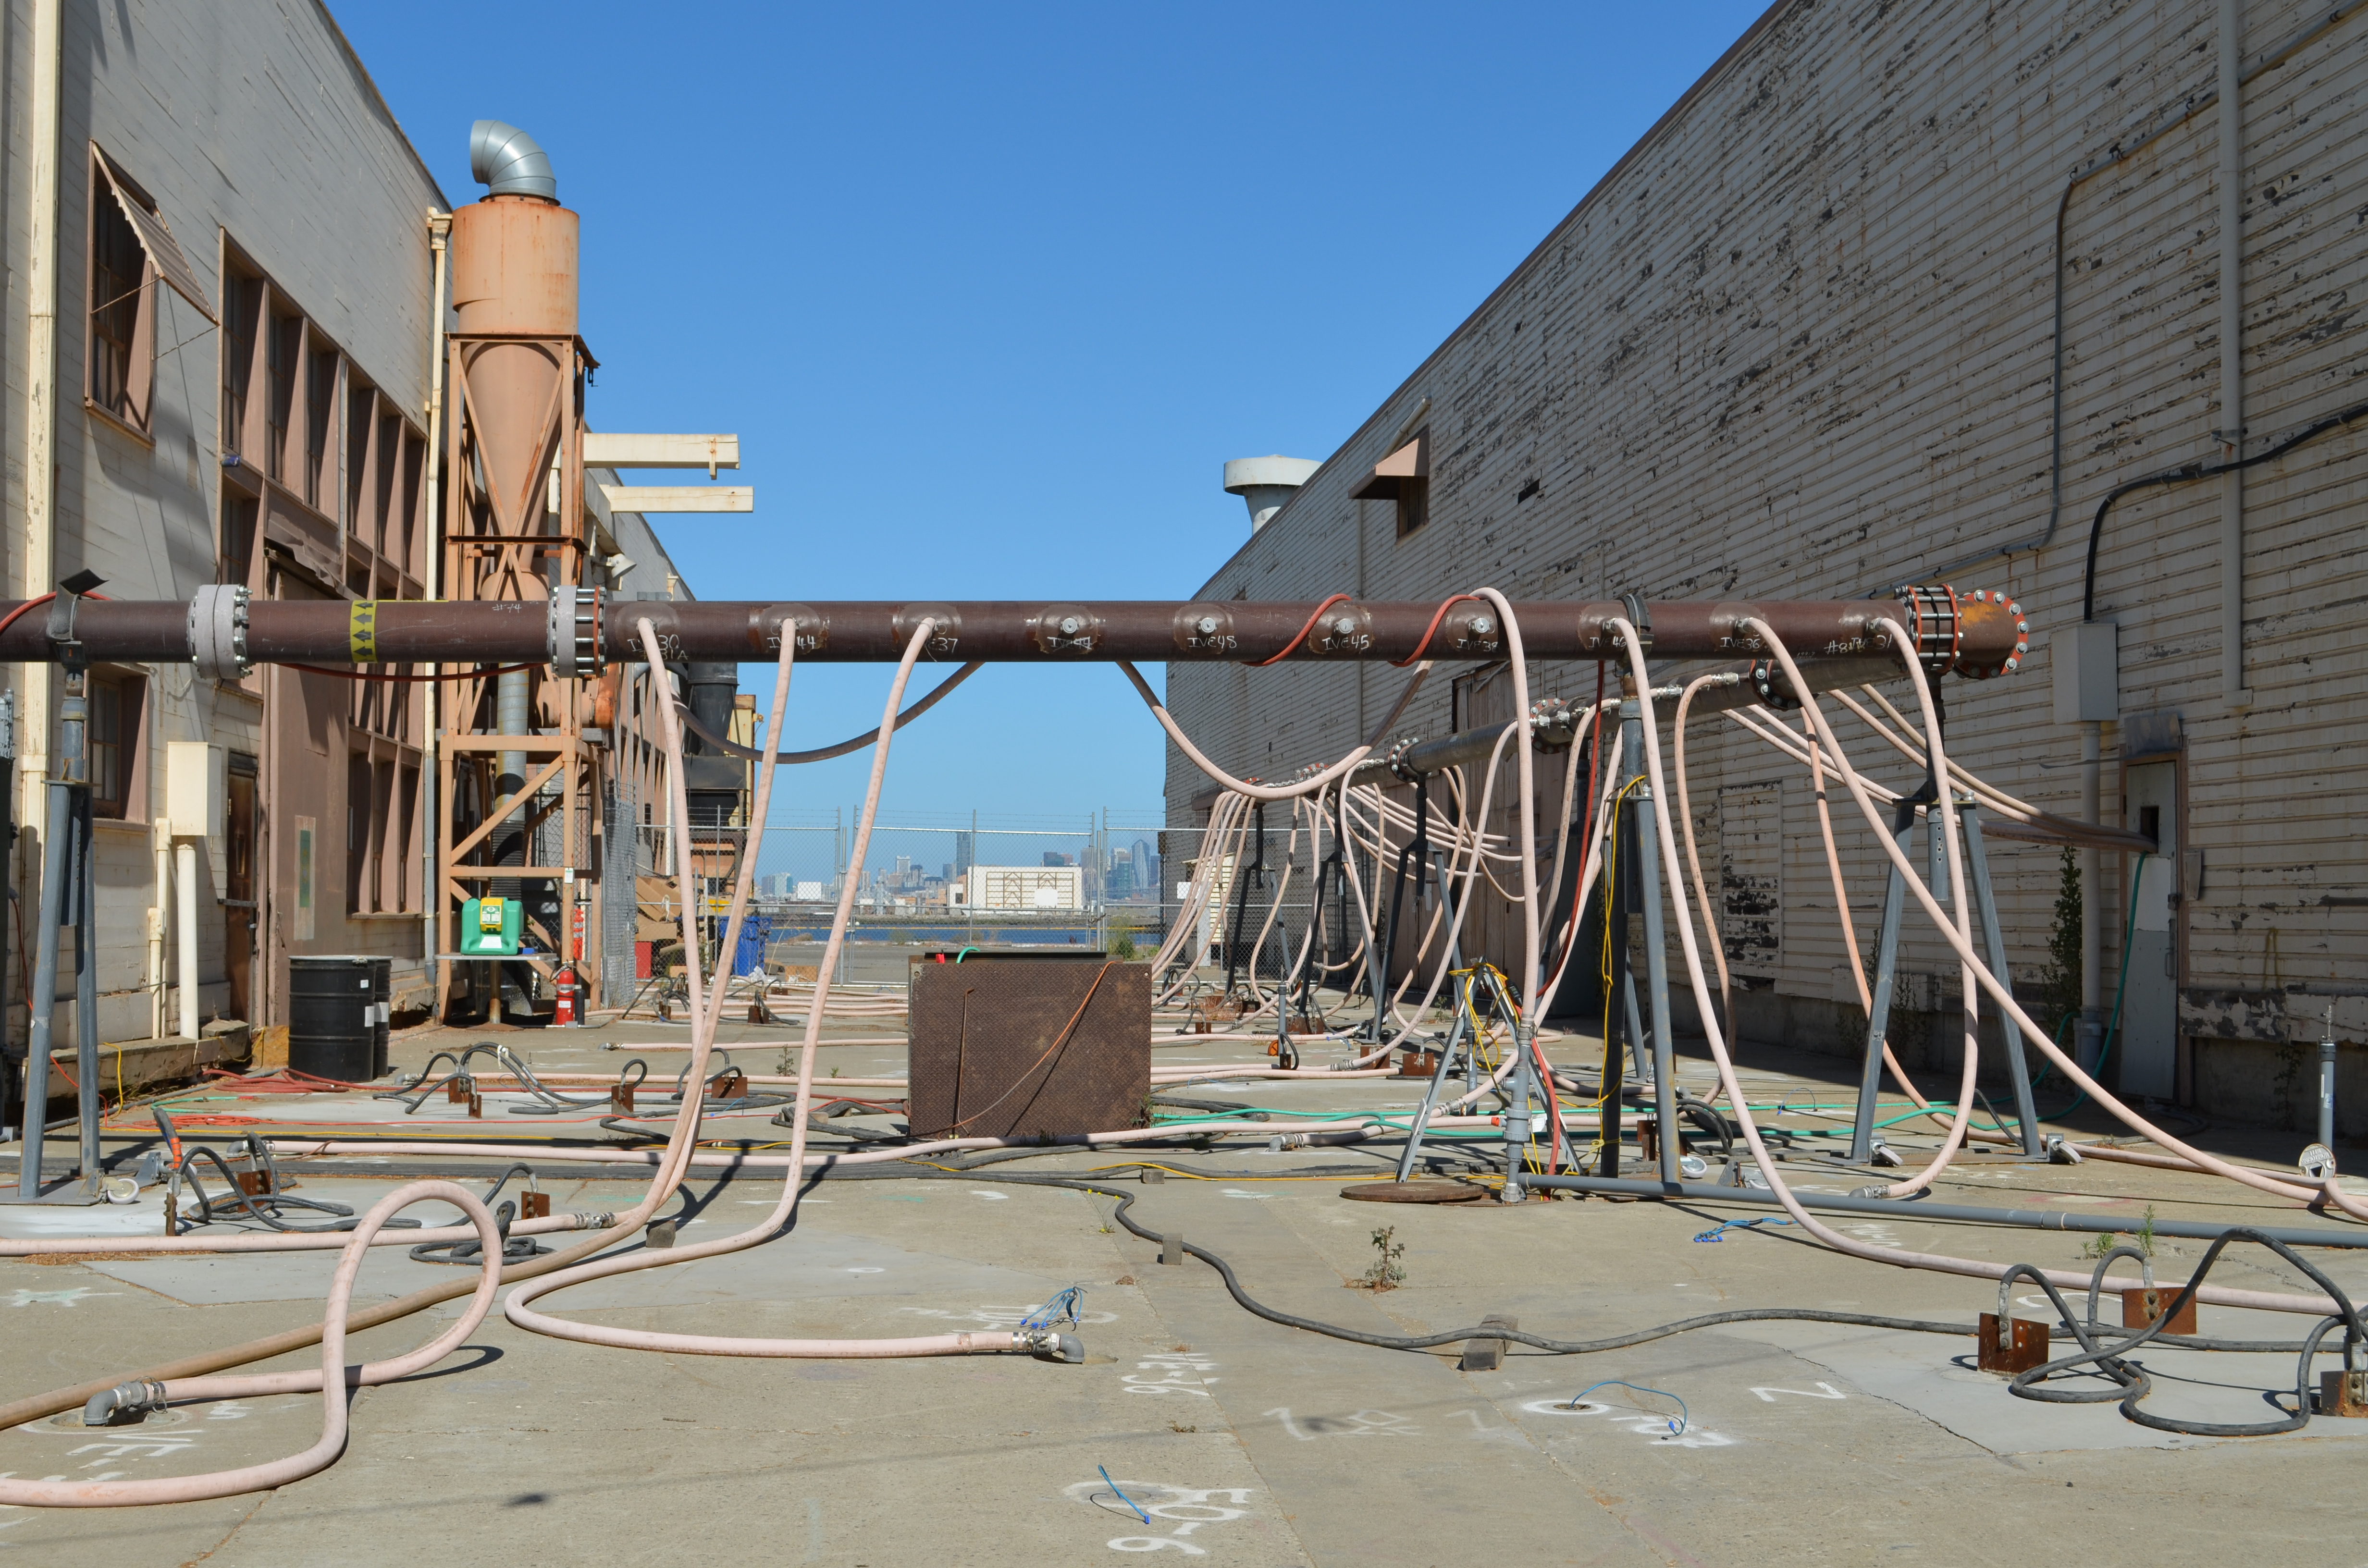 Heat treatment and vapor extraction - OU-2B